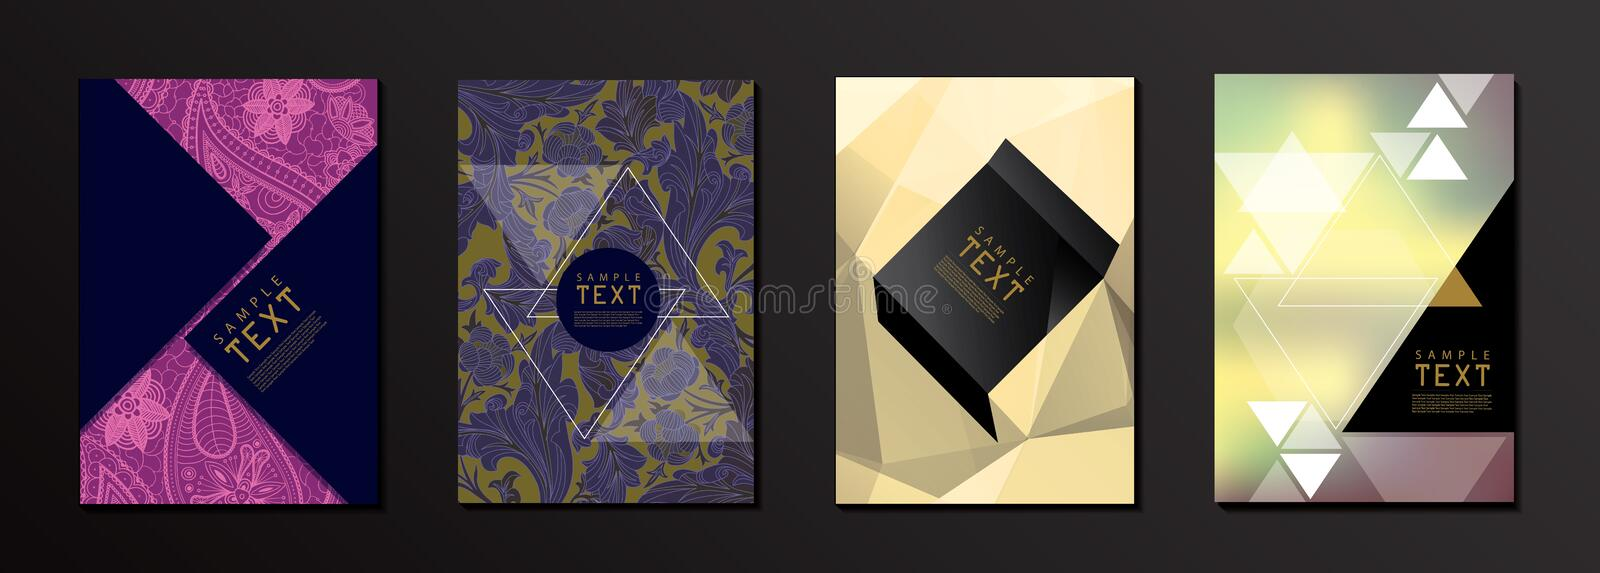 Flower and Geometrical Shape Cover Design Template stock illustration